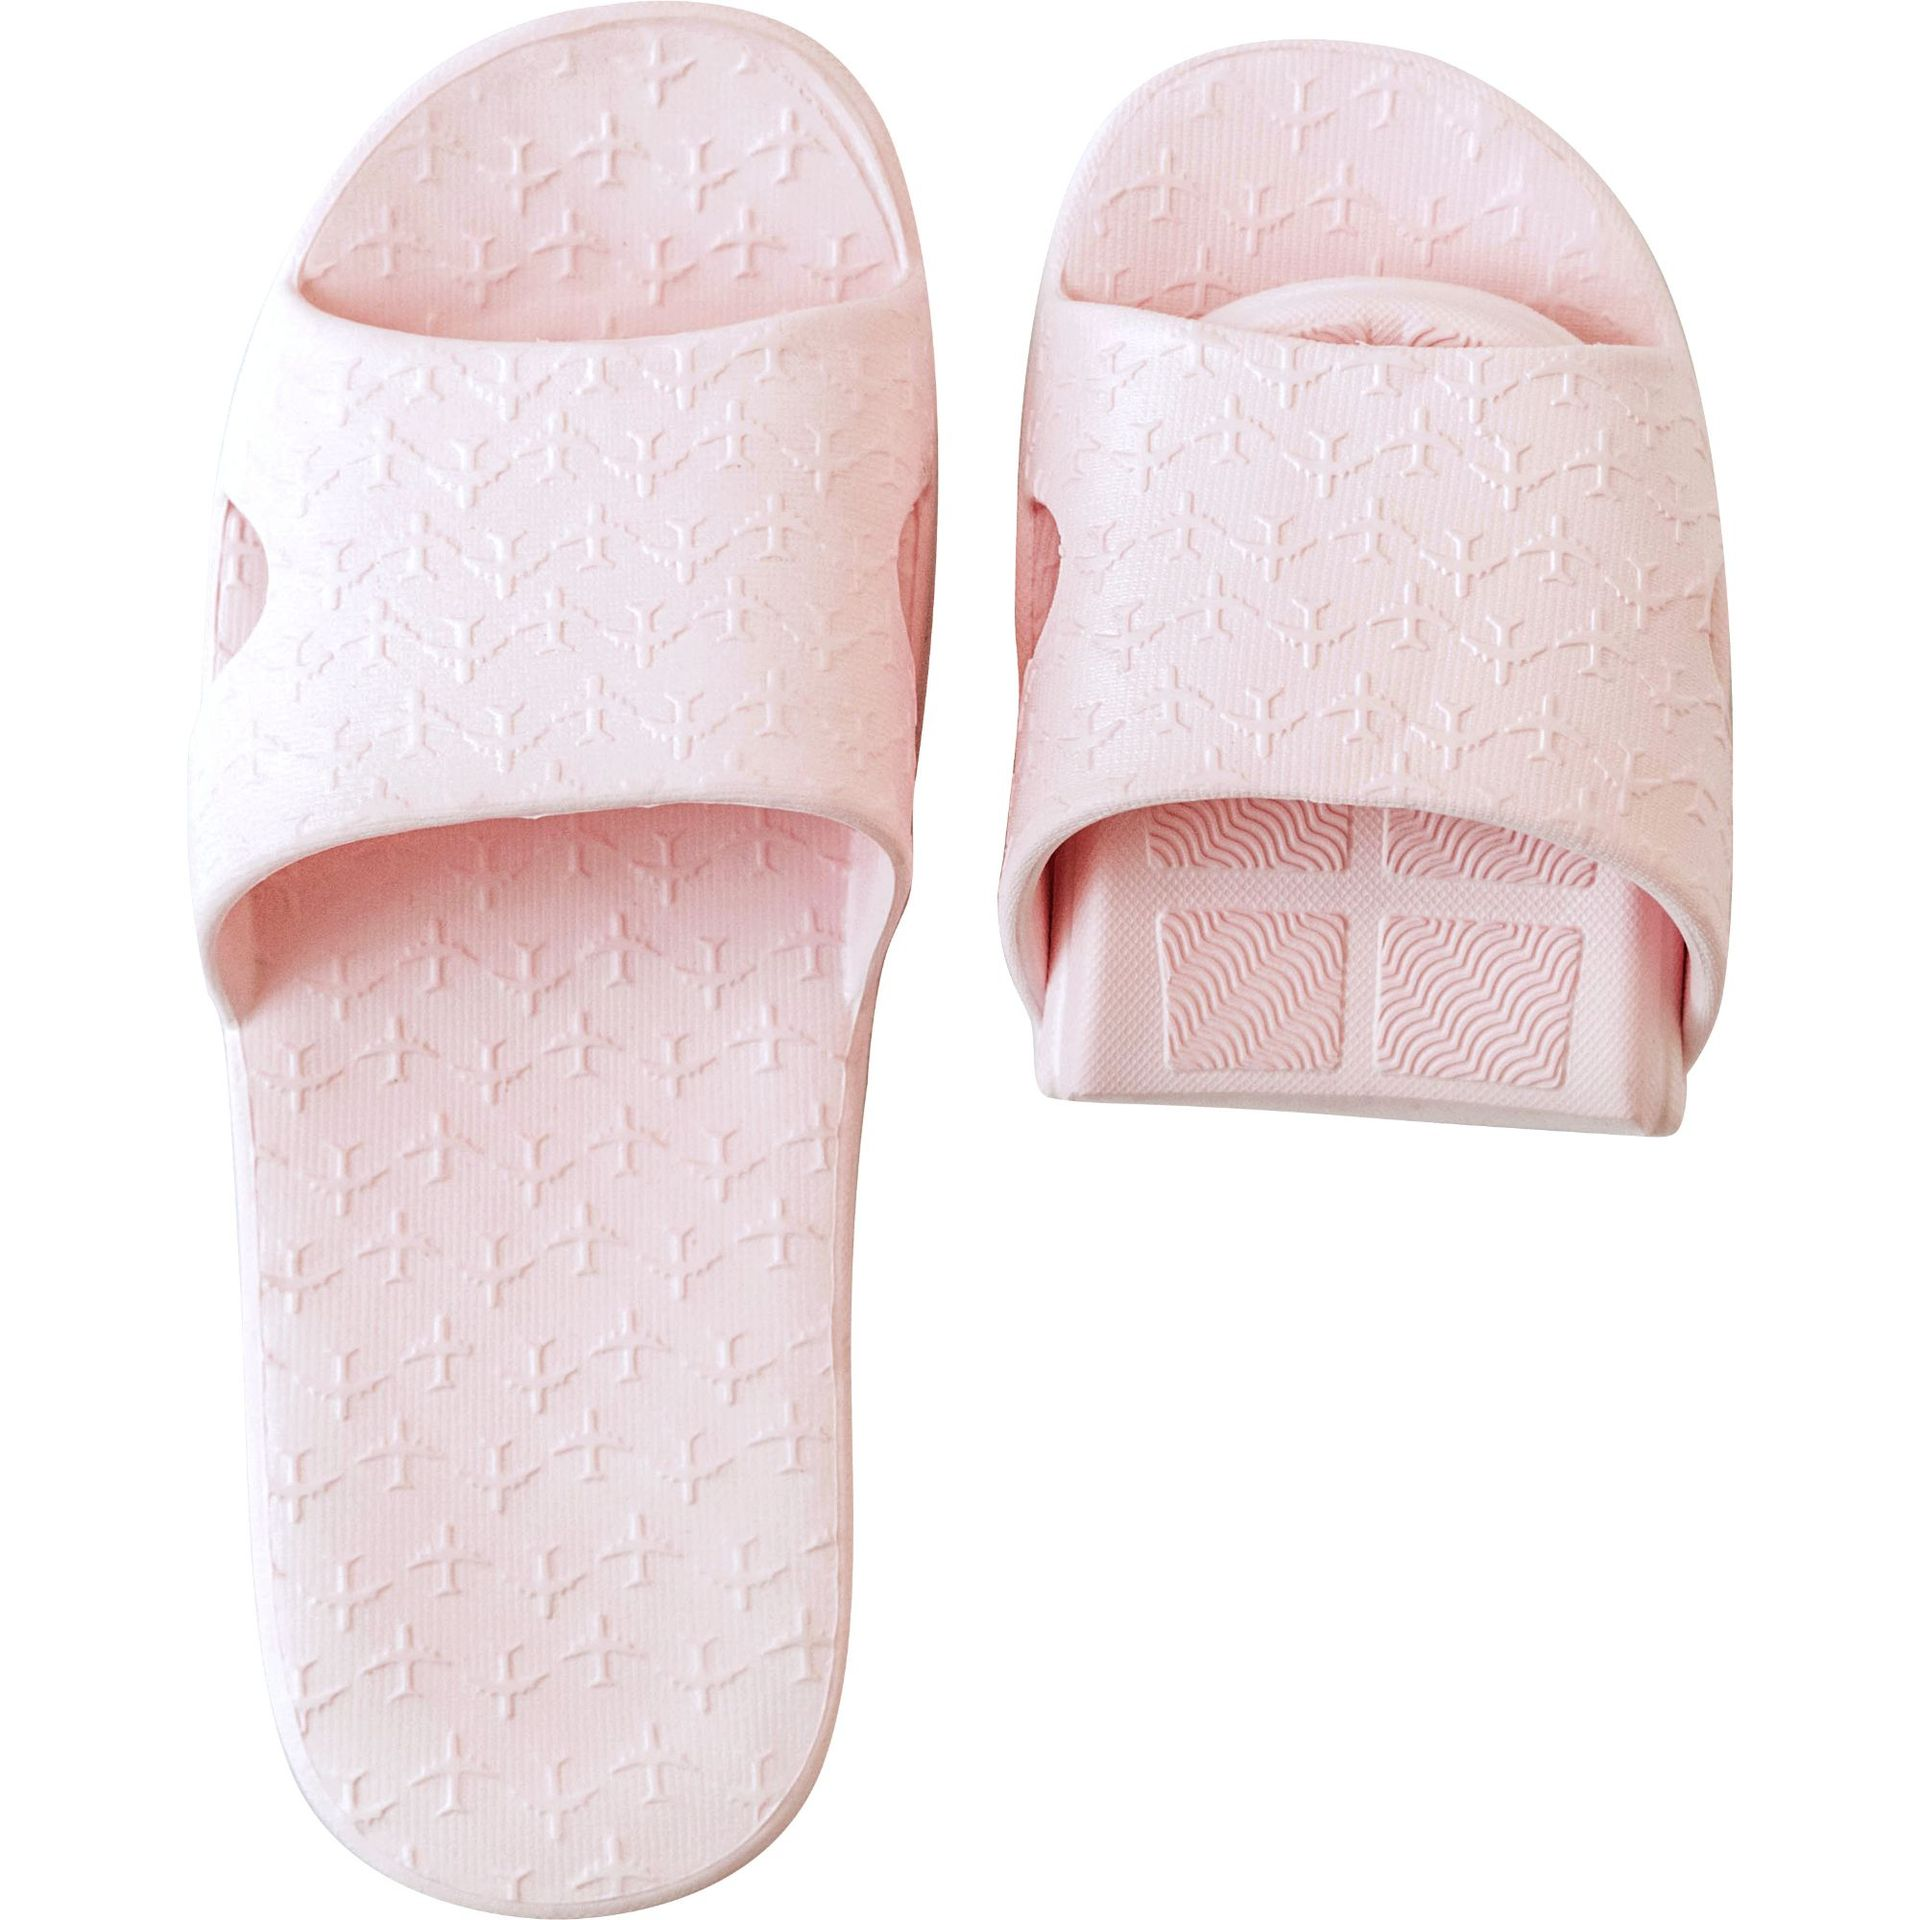 85981244973e EVA couple fashion folding Travel slippers Japanese Pop Up Slippers women  Bath slippers simple indoor sandals mujer beach shoes-in Slippers from Shoes  on ...